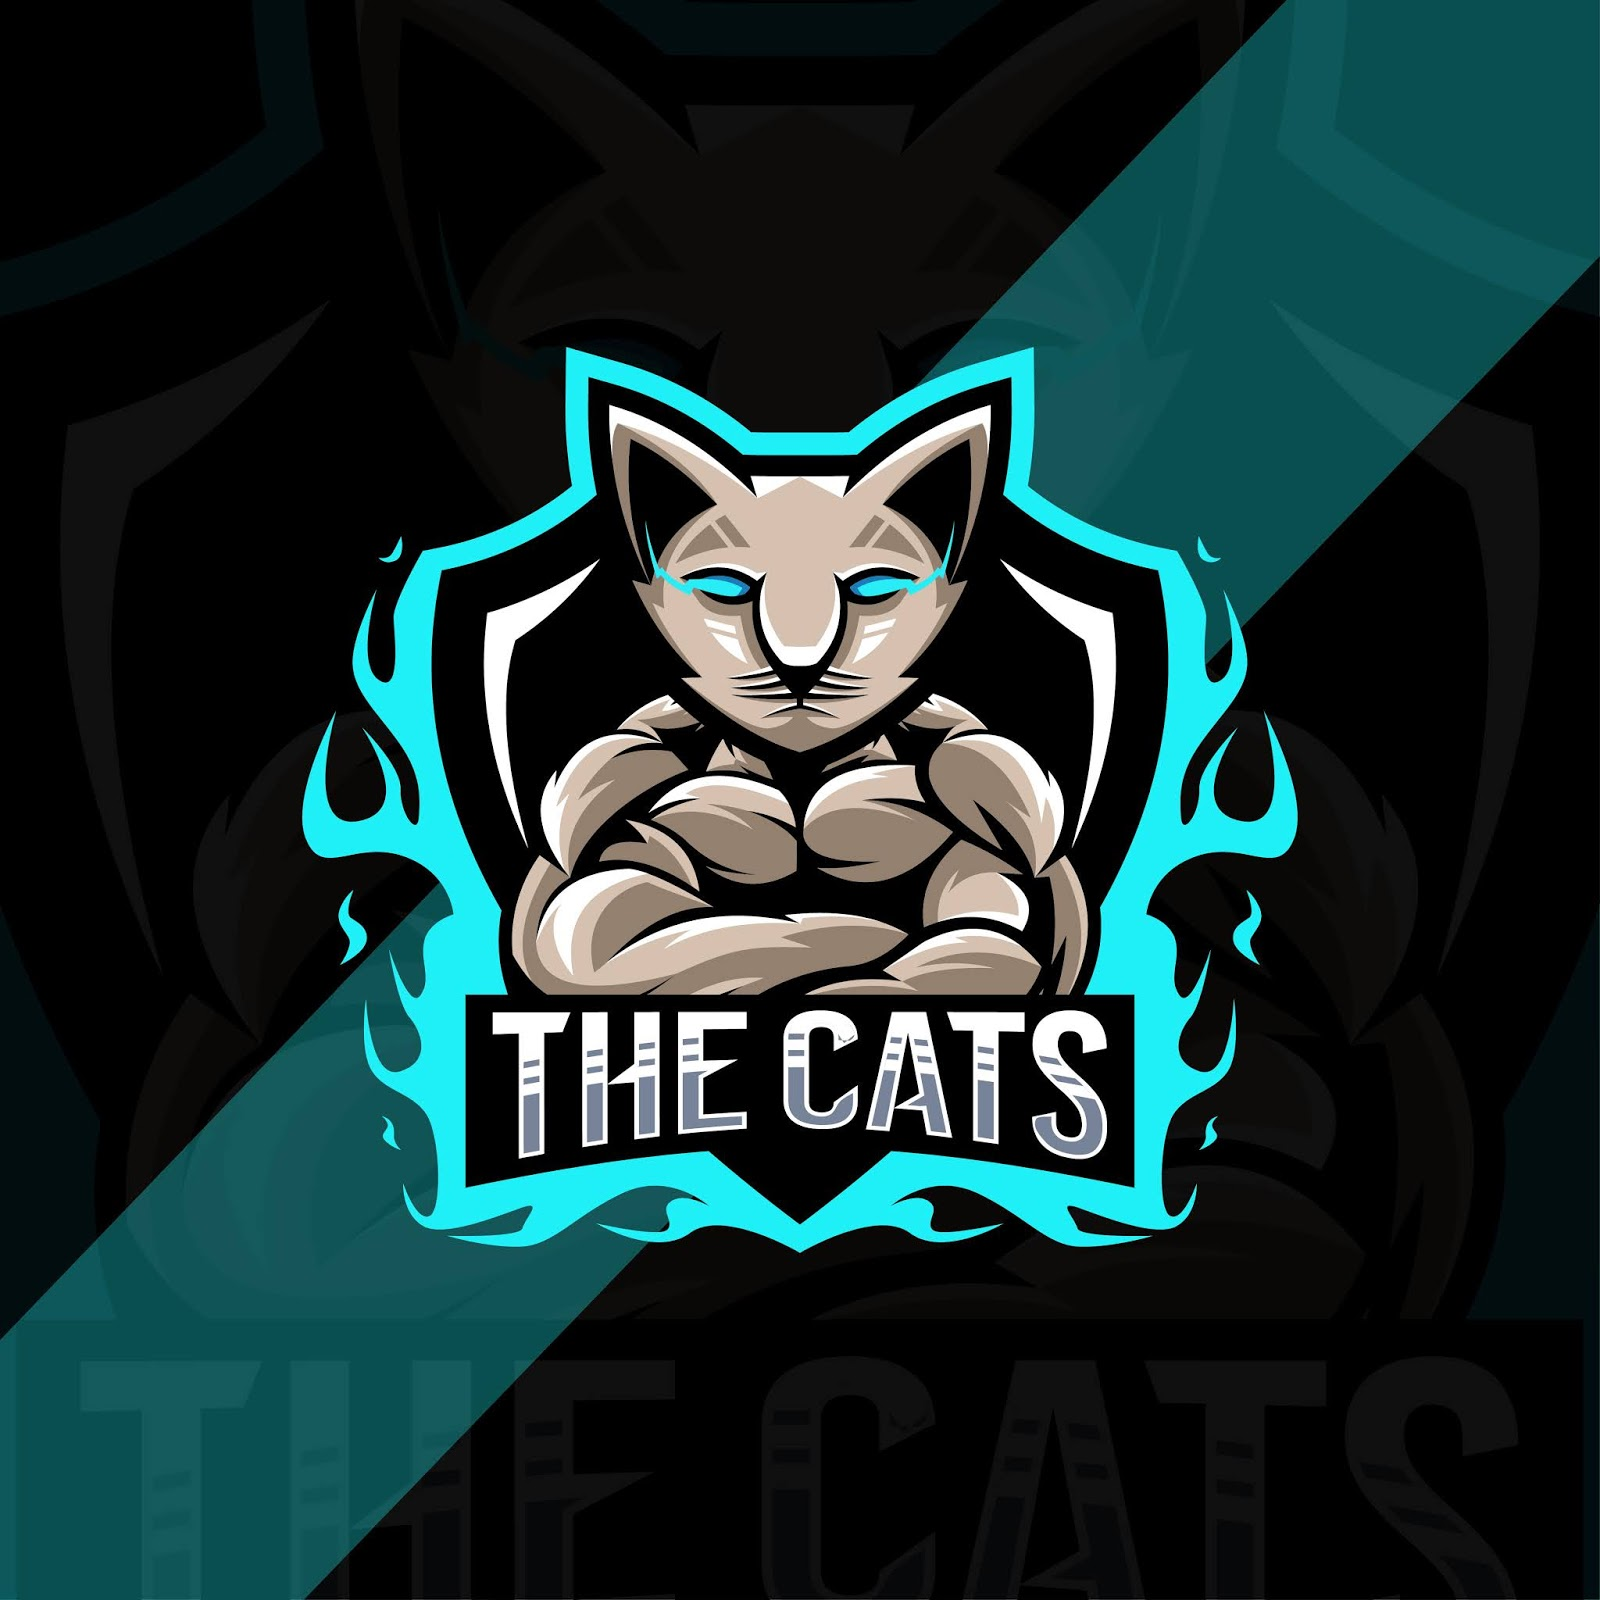 Muscle Cat Mascot Logo Esport Design Free Download Vector CDR, AI, EPS and PNG Formats